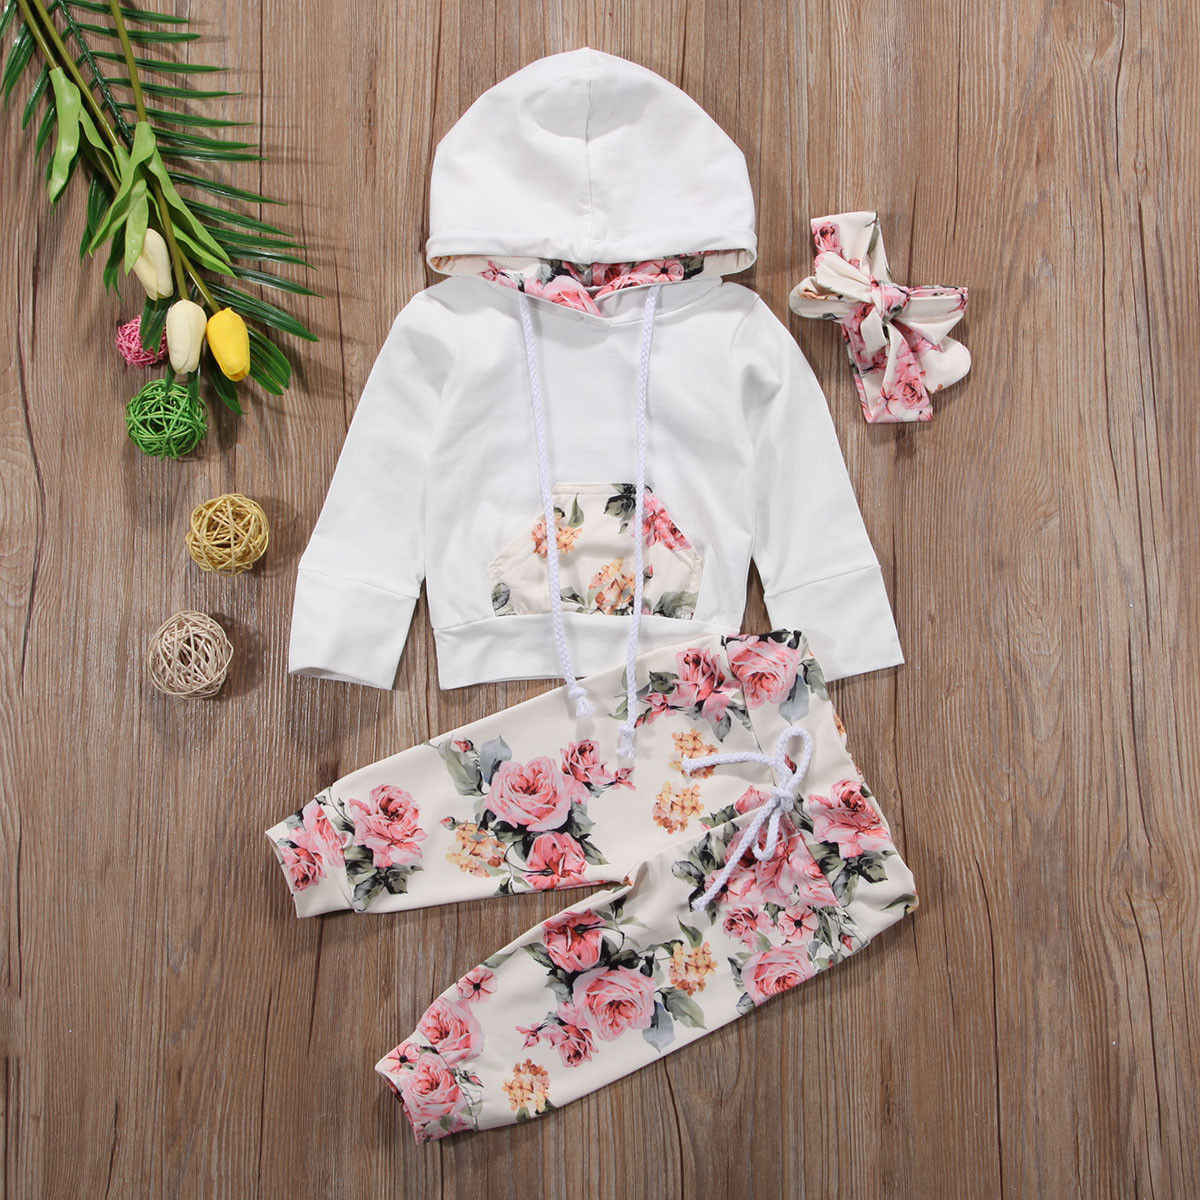 Autumn Winter Newborn Kids Warm Cotton 2pcs Set Baby Girl Suits Toddler Hooded Tops Shirt+Long Pants Outfits Set Tracksuit